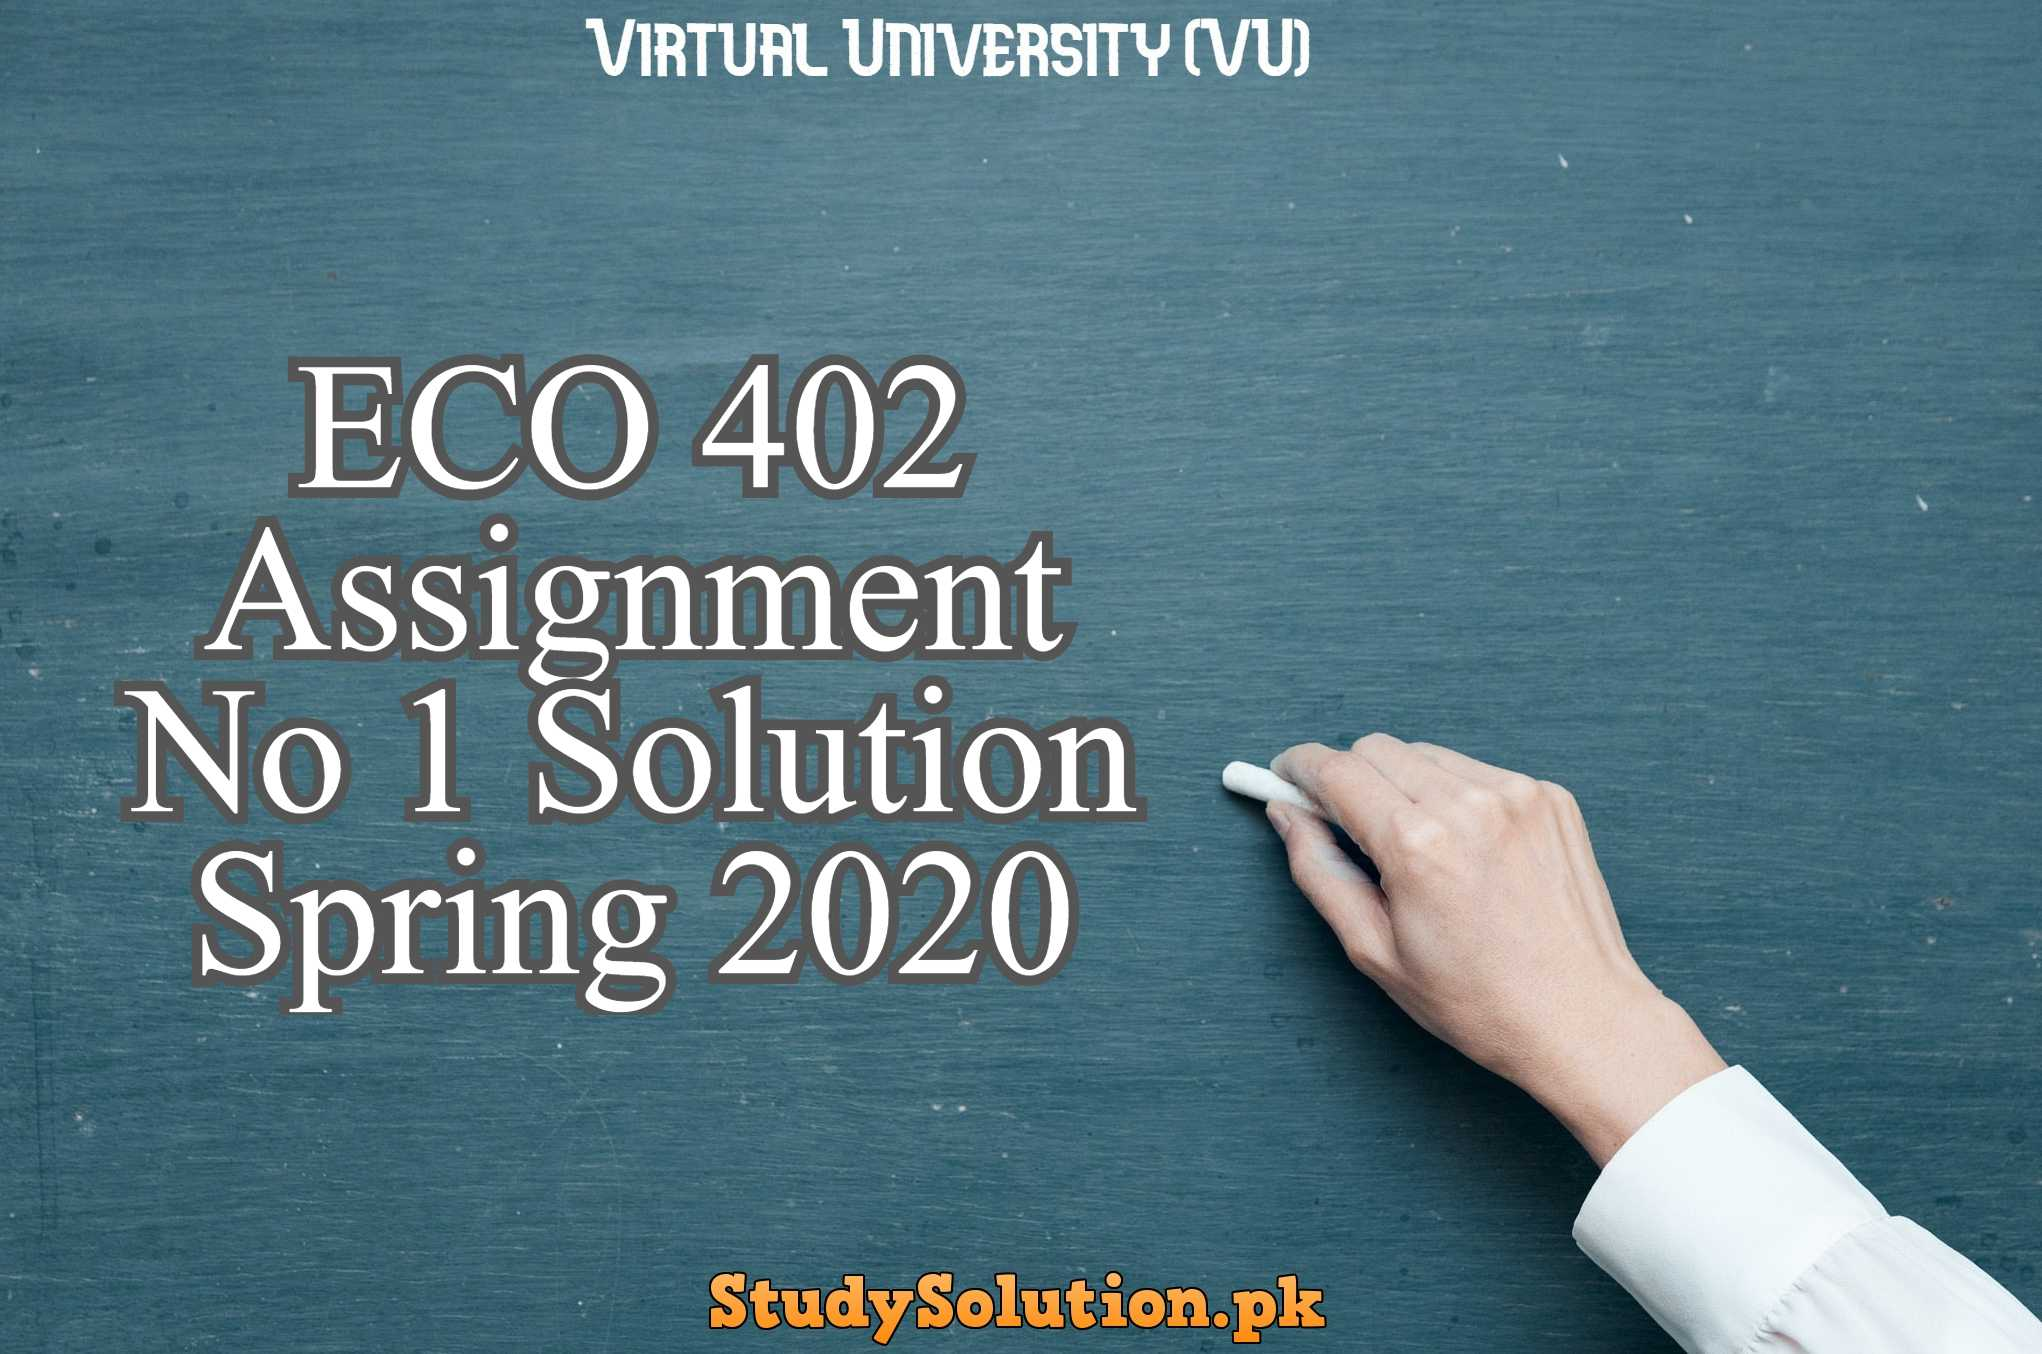 ECO 402 Assignment No 1 Solution Spring 2020